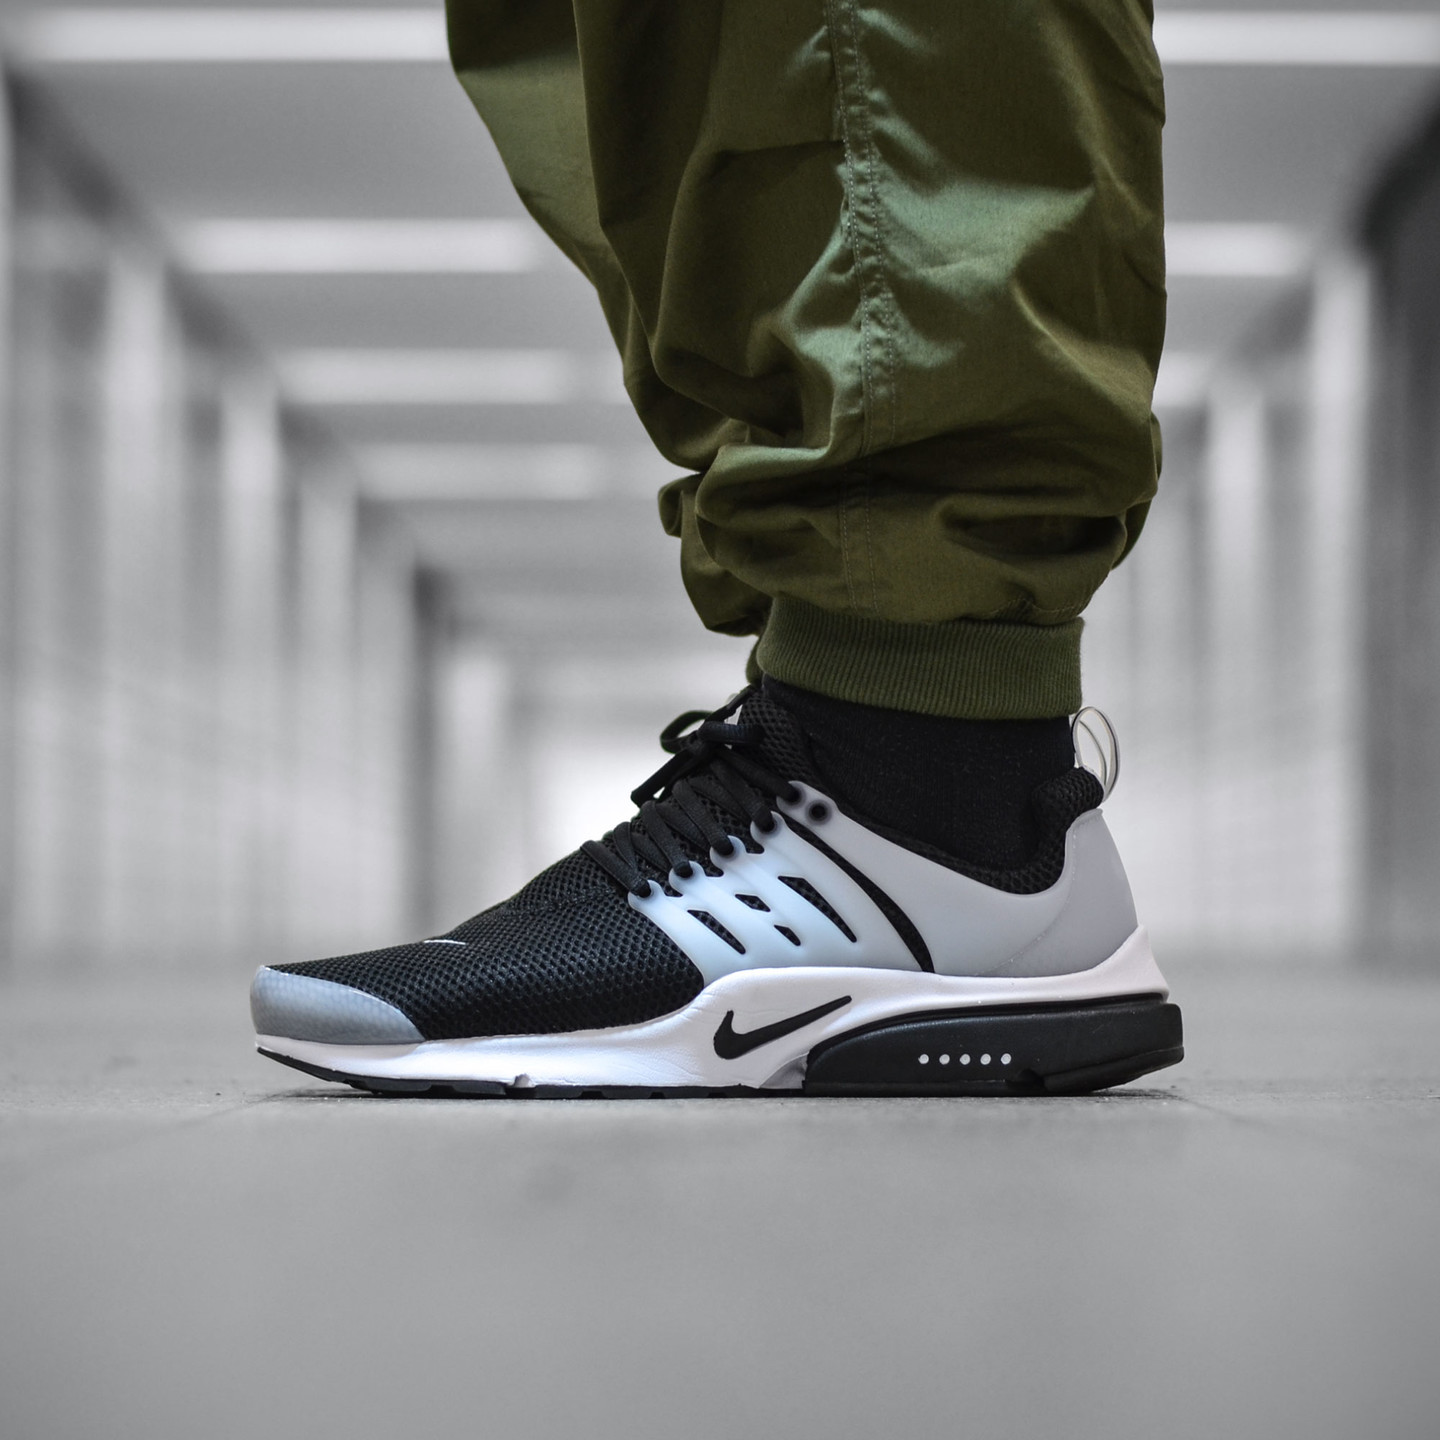 Nike Air Presto Flyknit Ultra Black / White Shadow 848132-010-44